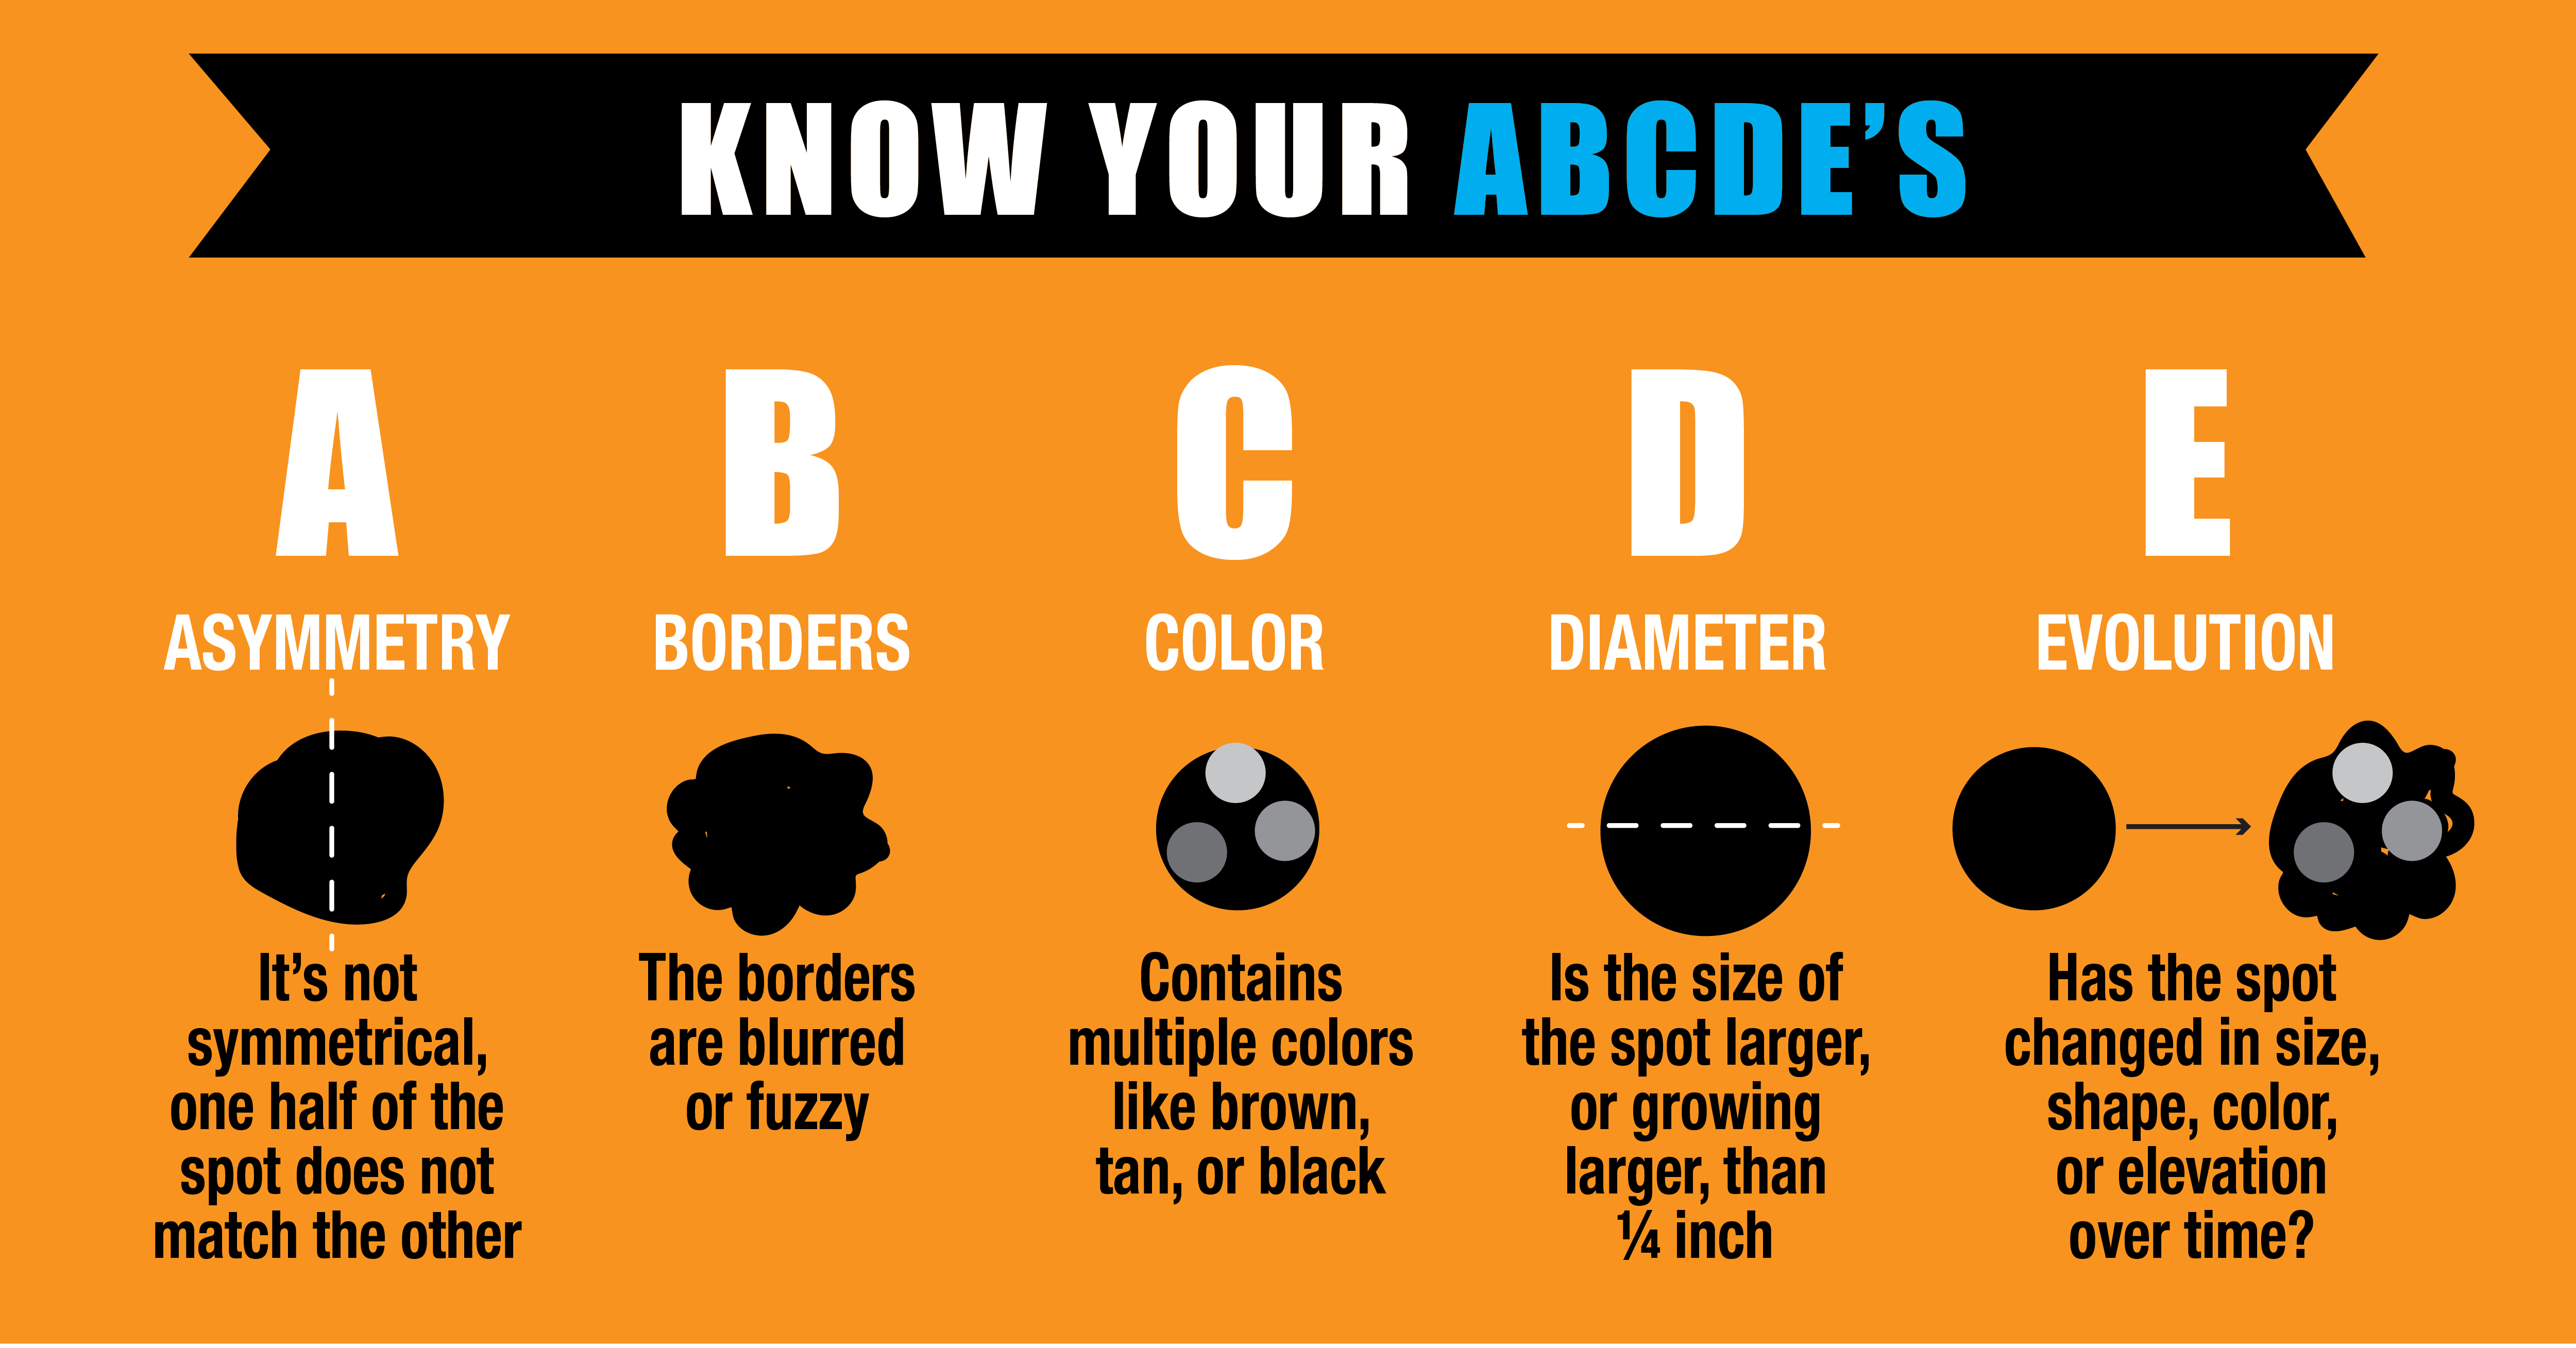 Nick Grimm PA-C, dermatology services provider, recommends knowing your ABCDEs: asymmetry, border, color, diameter and evolution, when it comes to identifying changes in your skin.